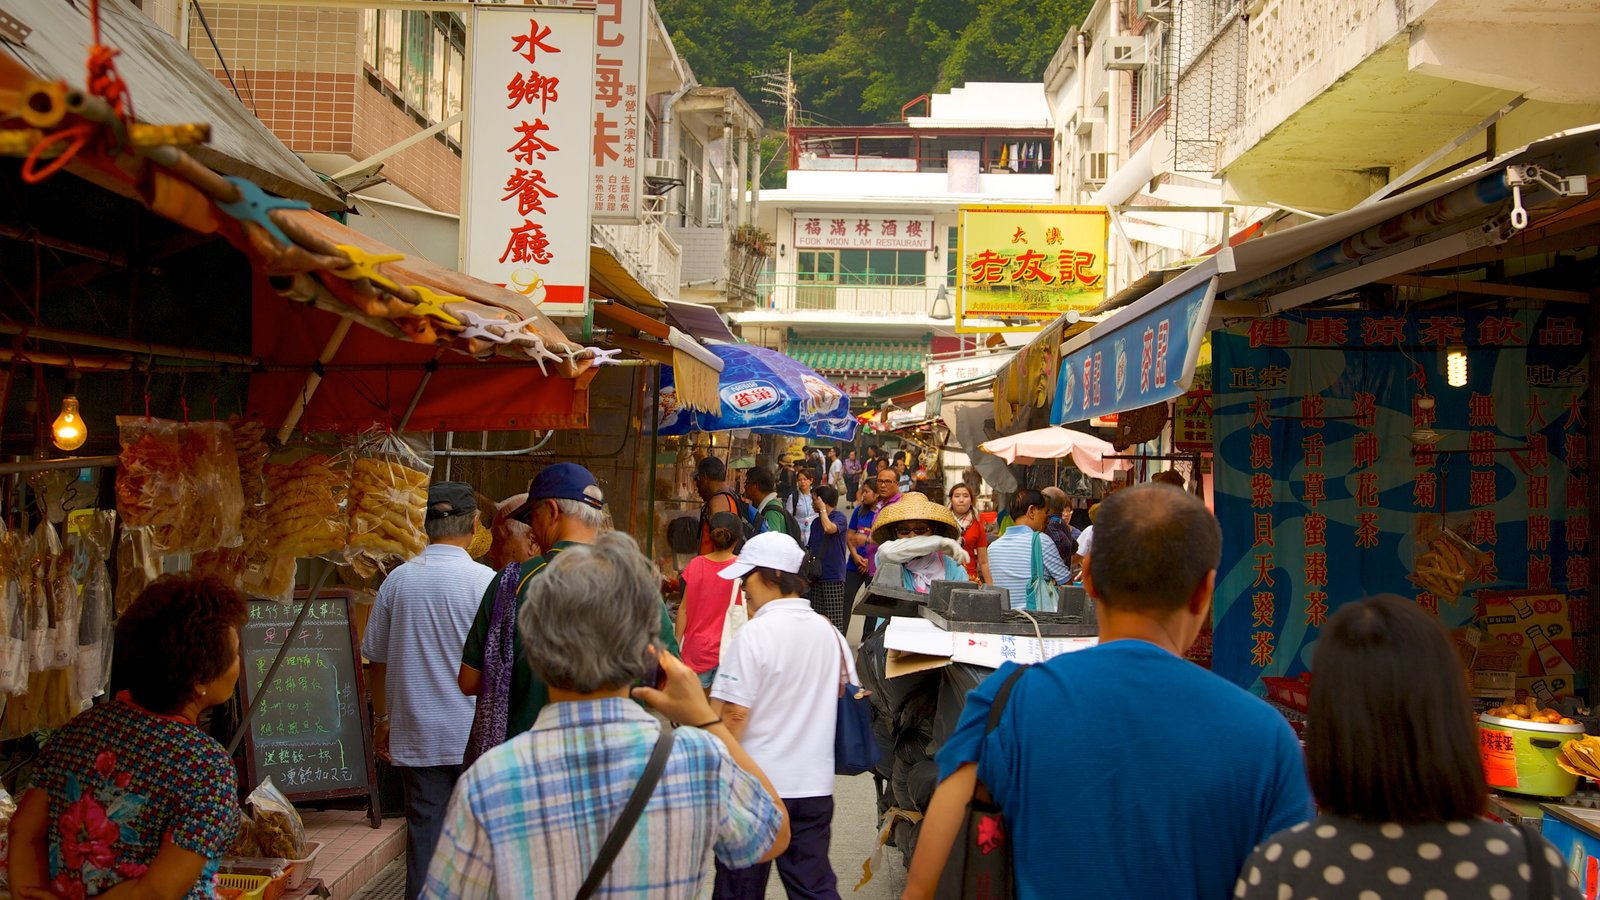 Tai O Fishing Village featuring markets as well as a large group of people